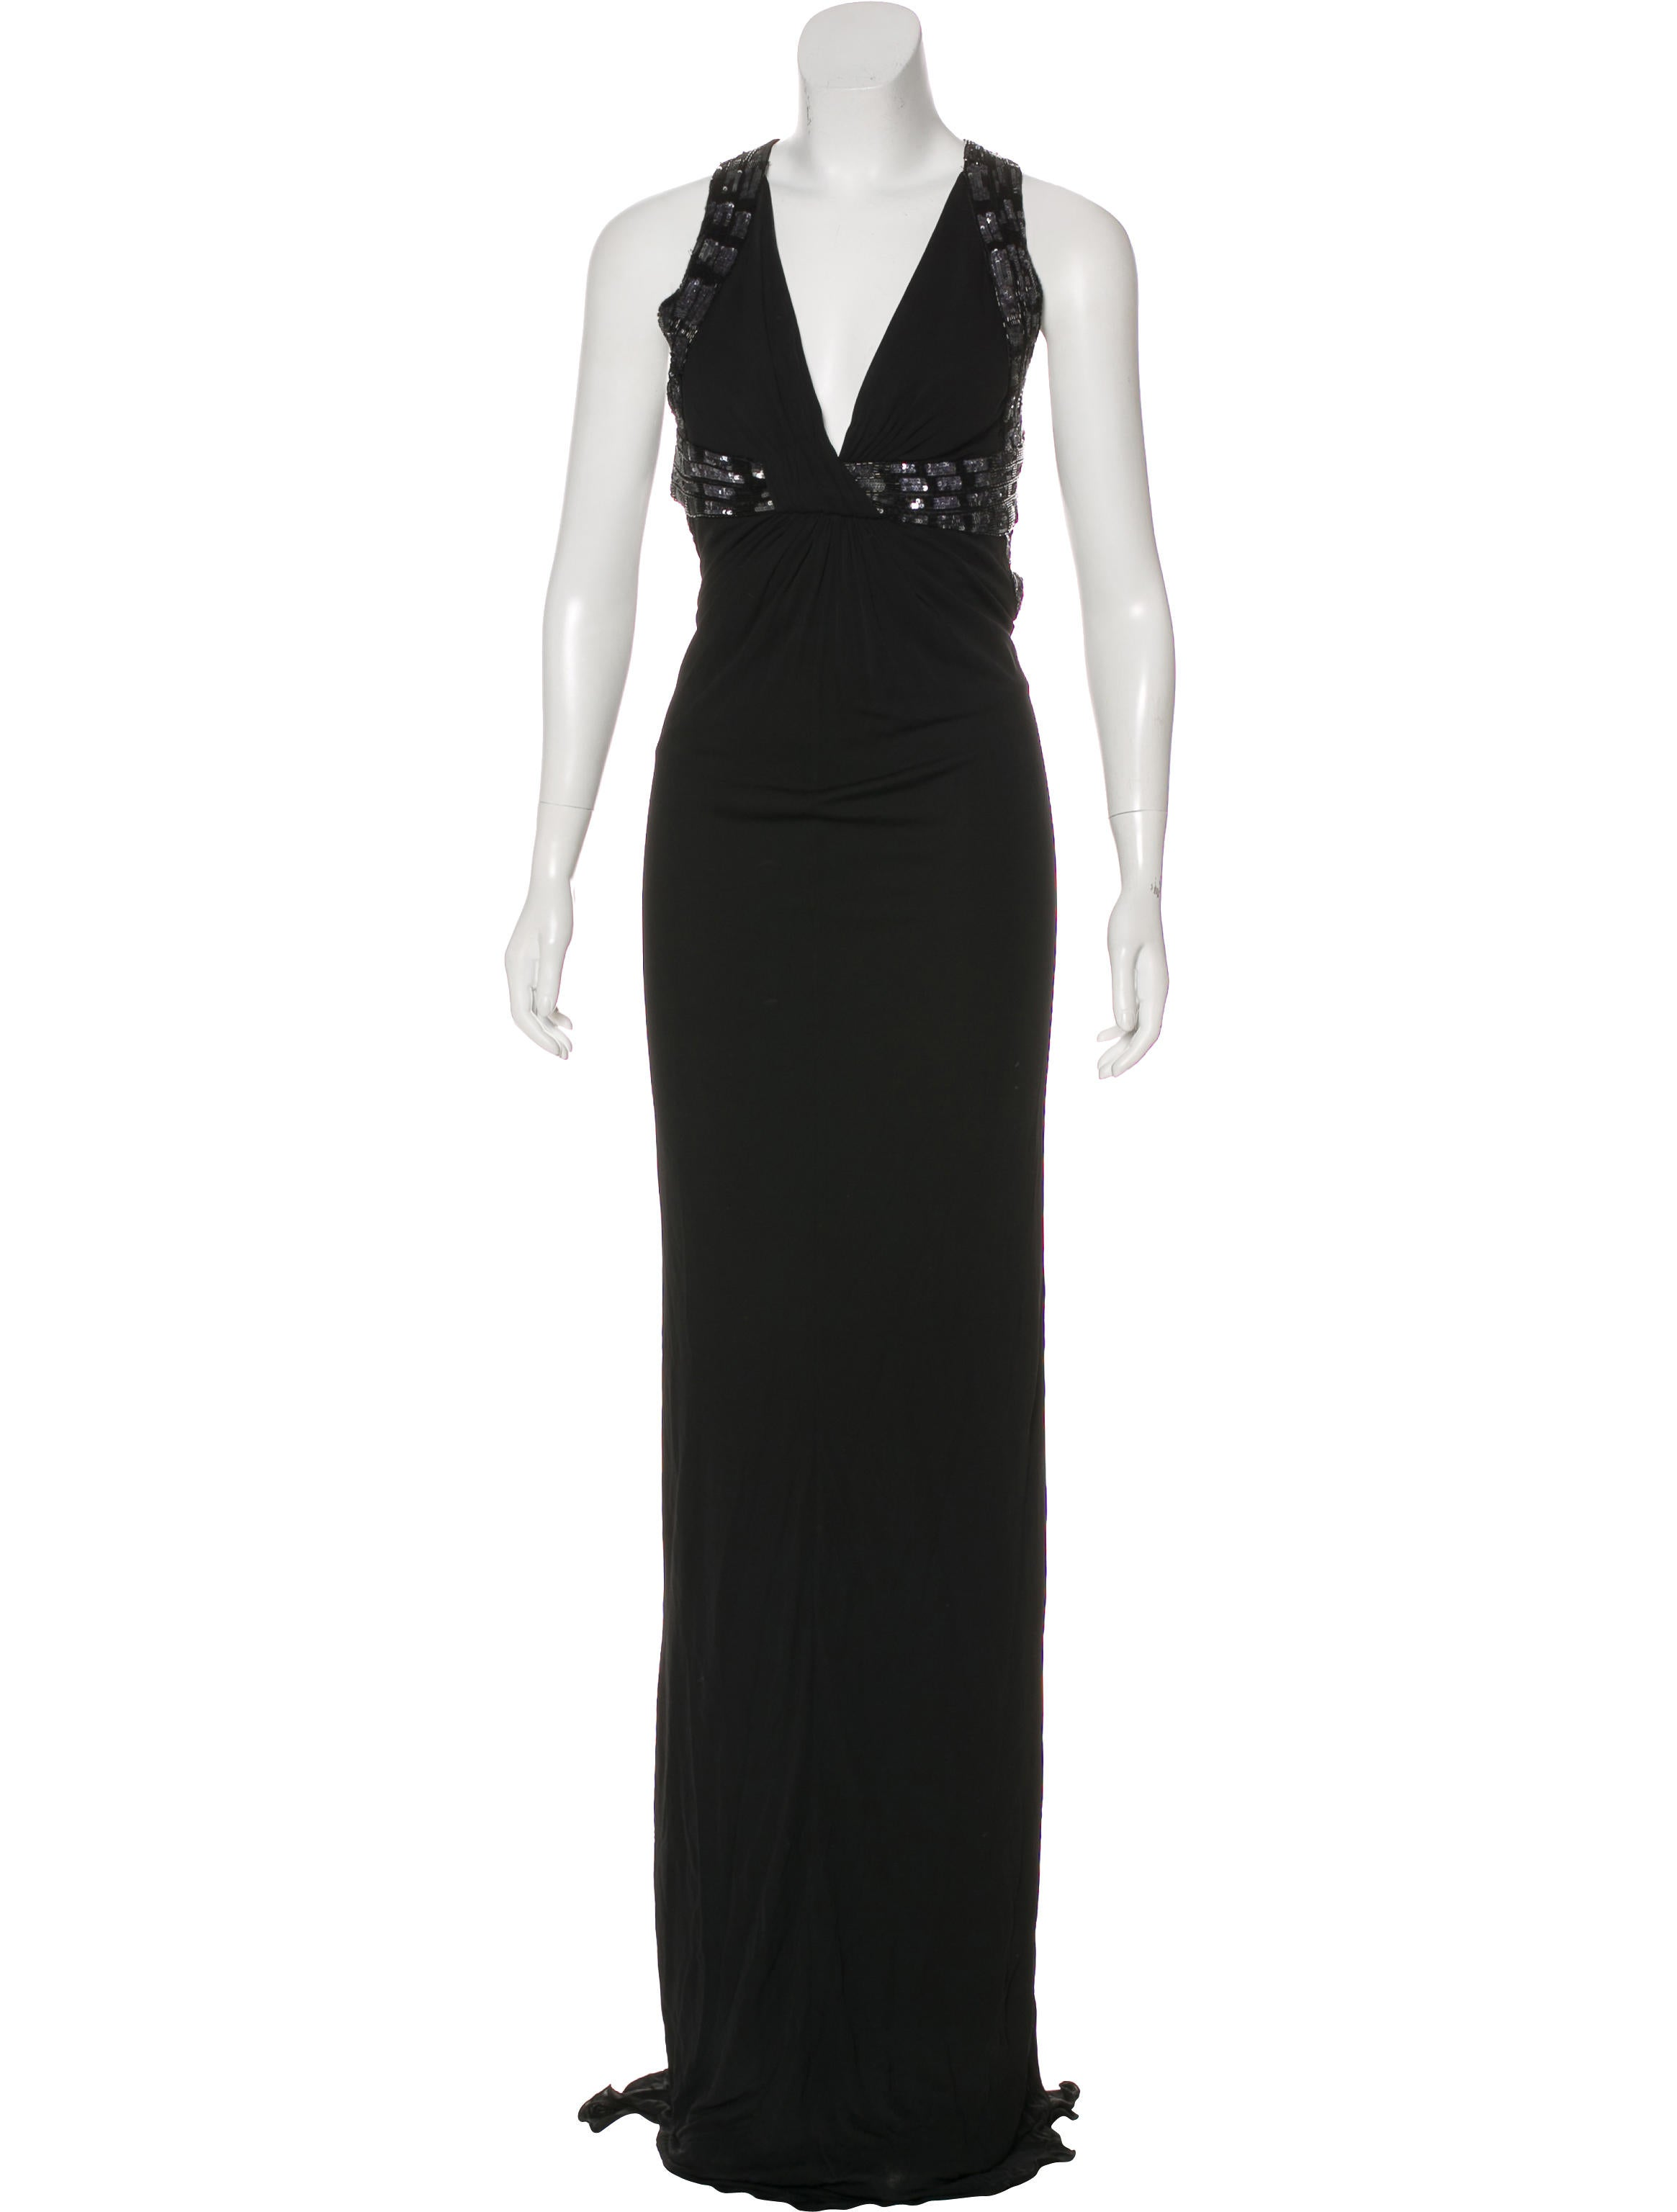 Roberto Cavalli Beaded V-Neck Gown - Clothing - ROB52656   The RealReal